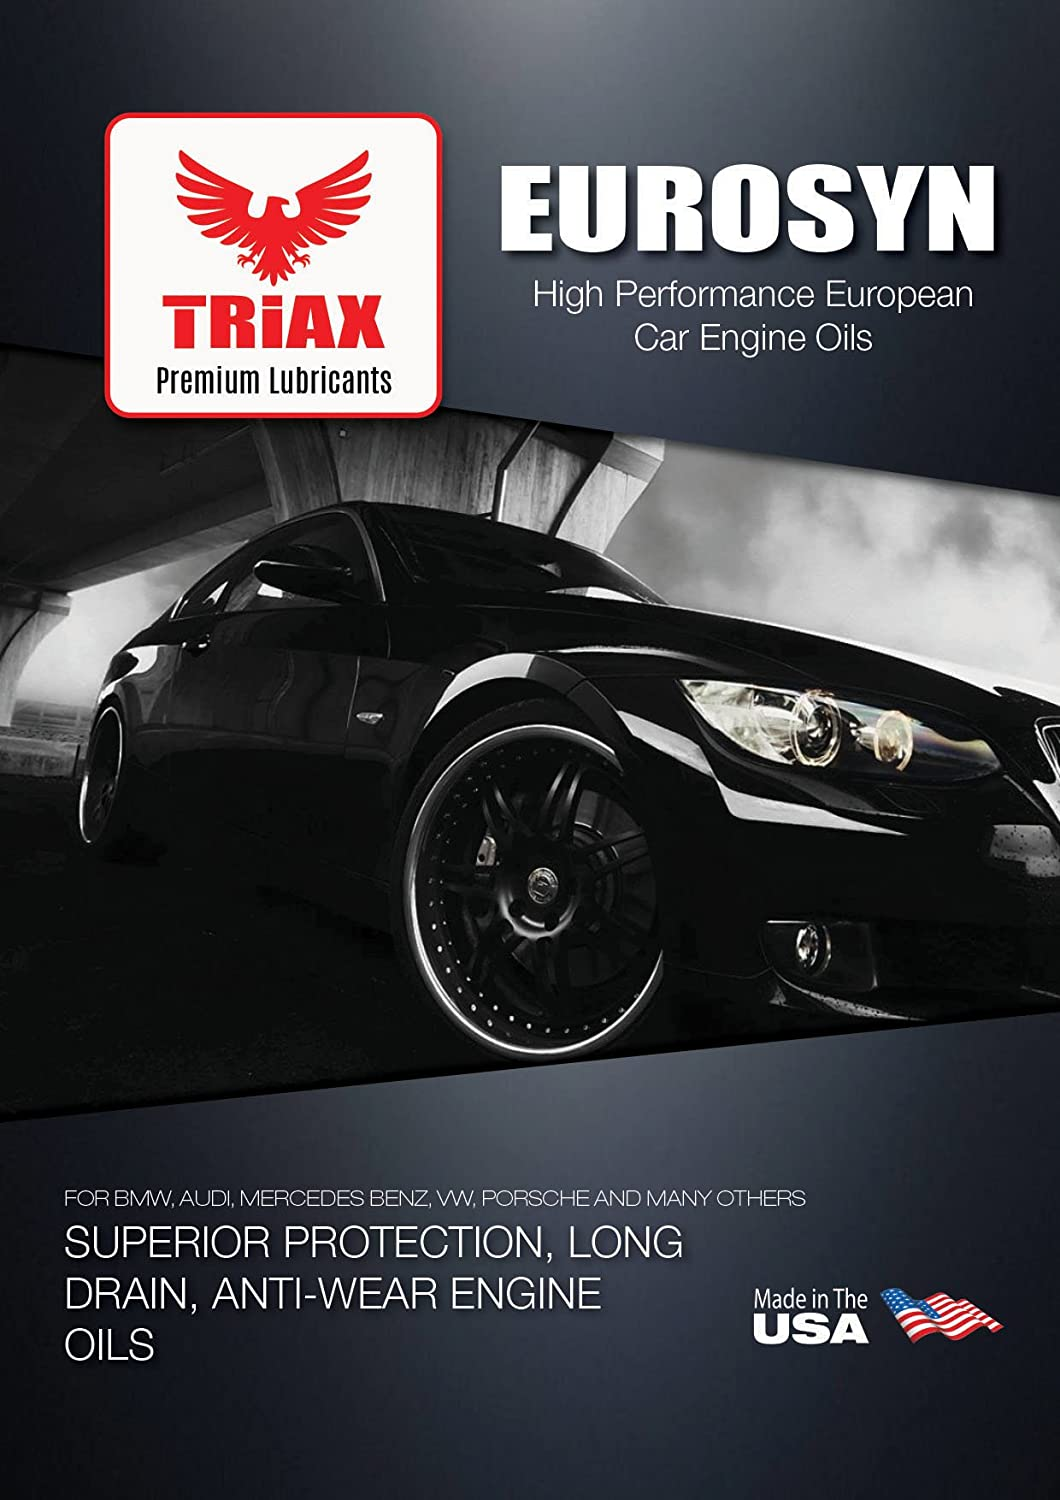 Triax Euro Lx 5w 40 Full Synthetic Enhanced Performance Mercedes Benz Lubricants European Car Engine Oil Compatible With Bmw Ll 01 2295 Audi Vw 50200